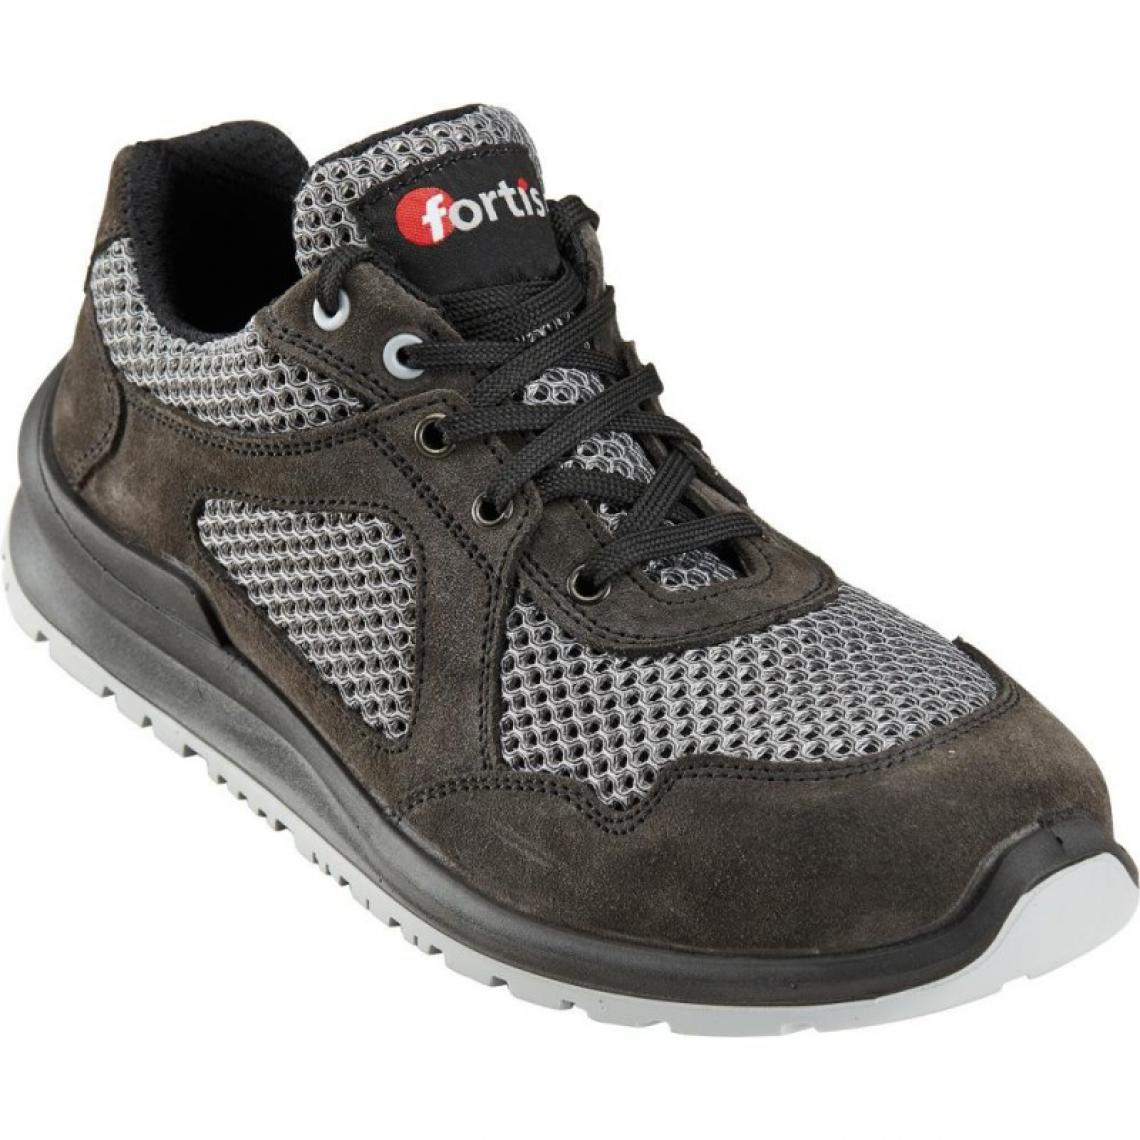 Fortis Chaussures basses Gunnar S1P, T.45,gris, FORTIS